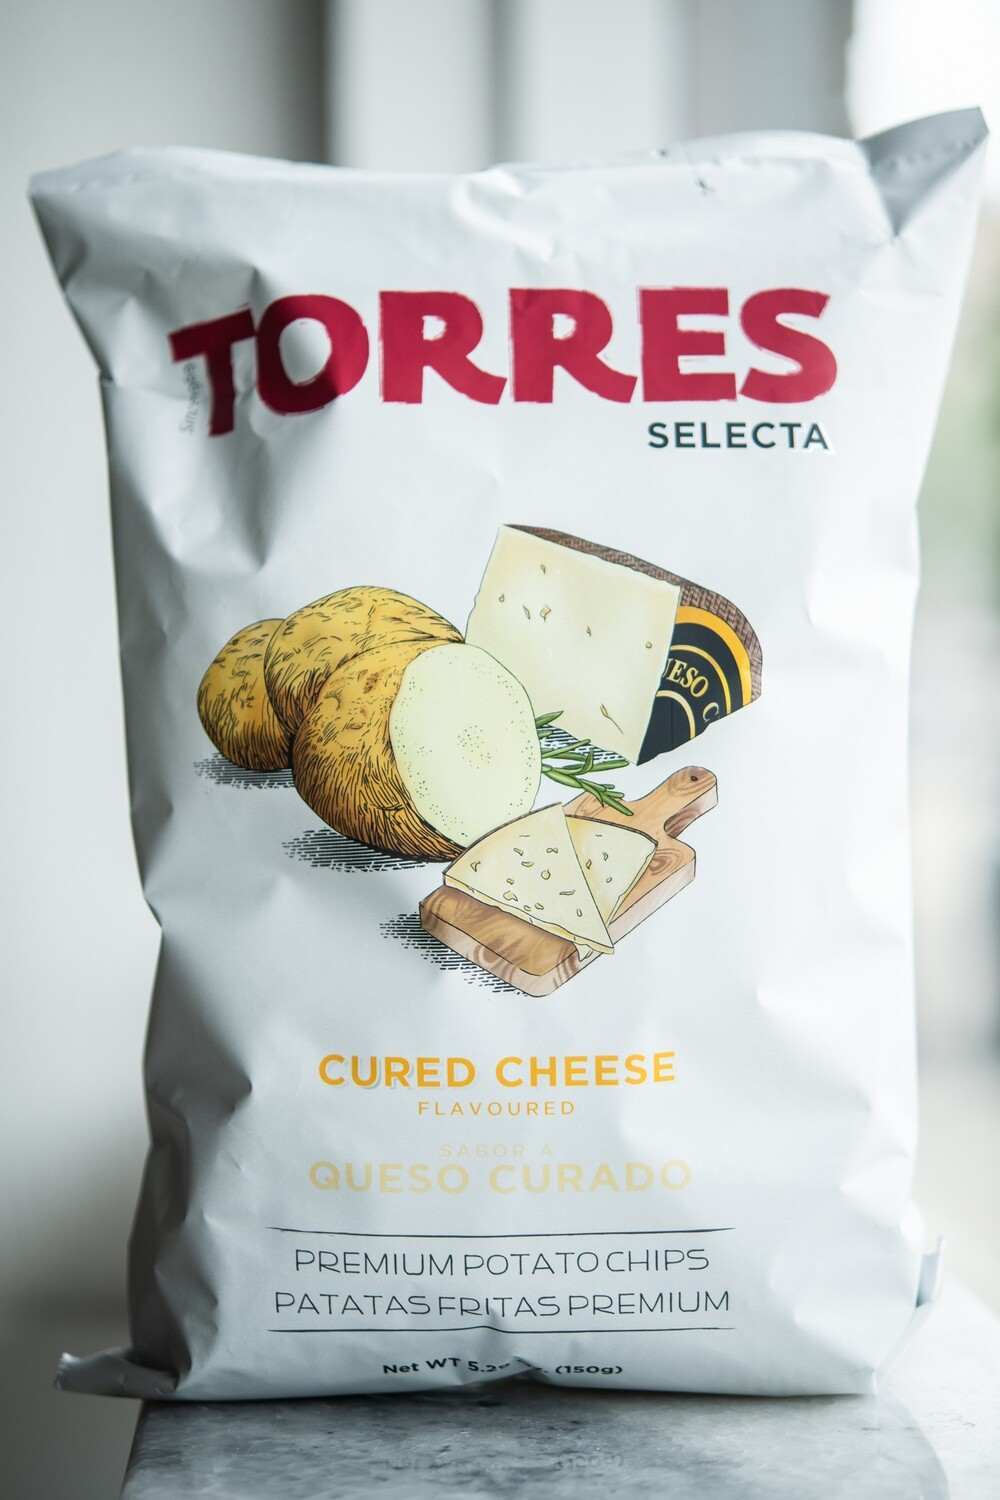 Torres Cured Cheese Potato Chips